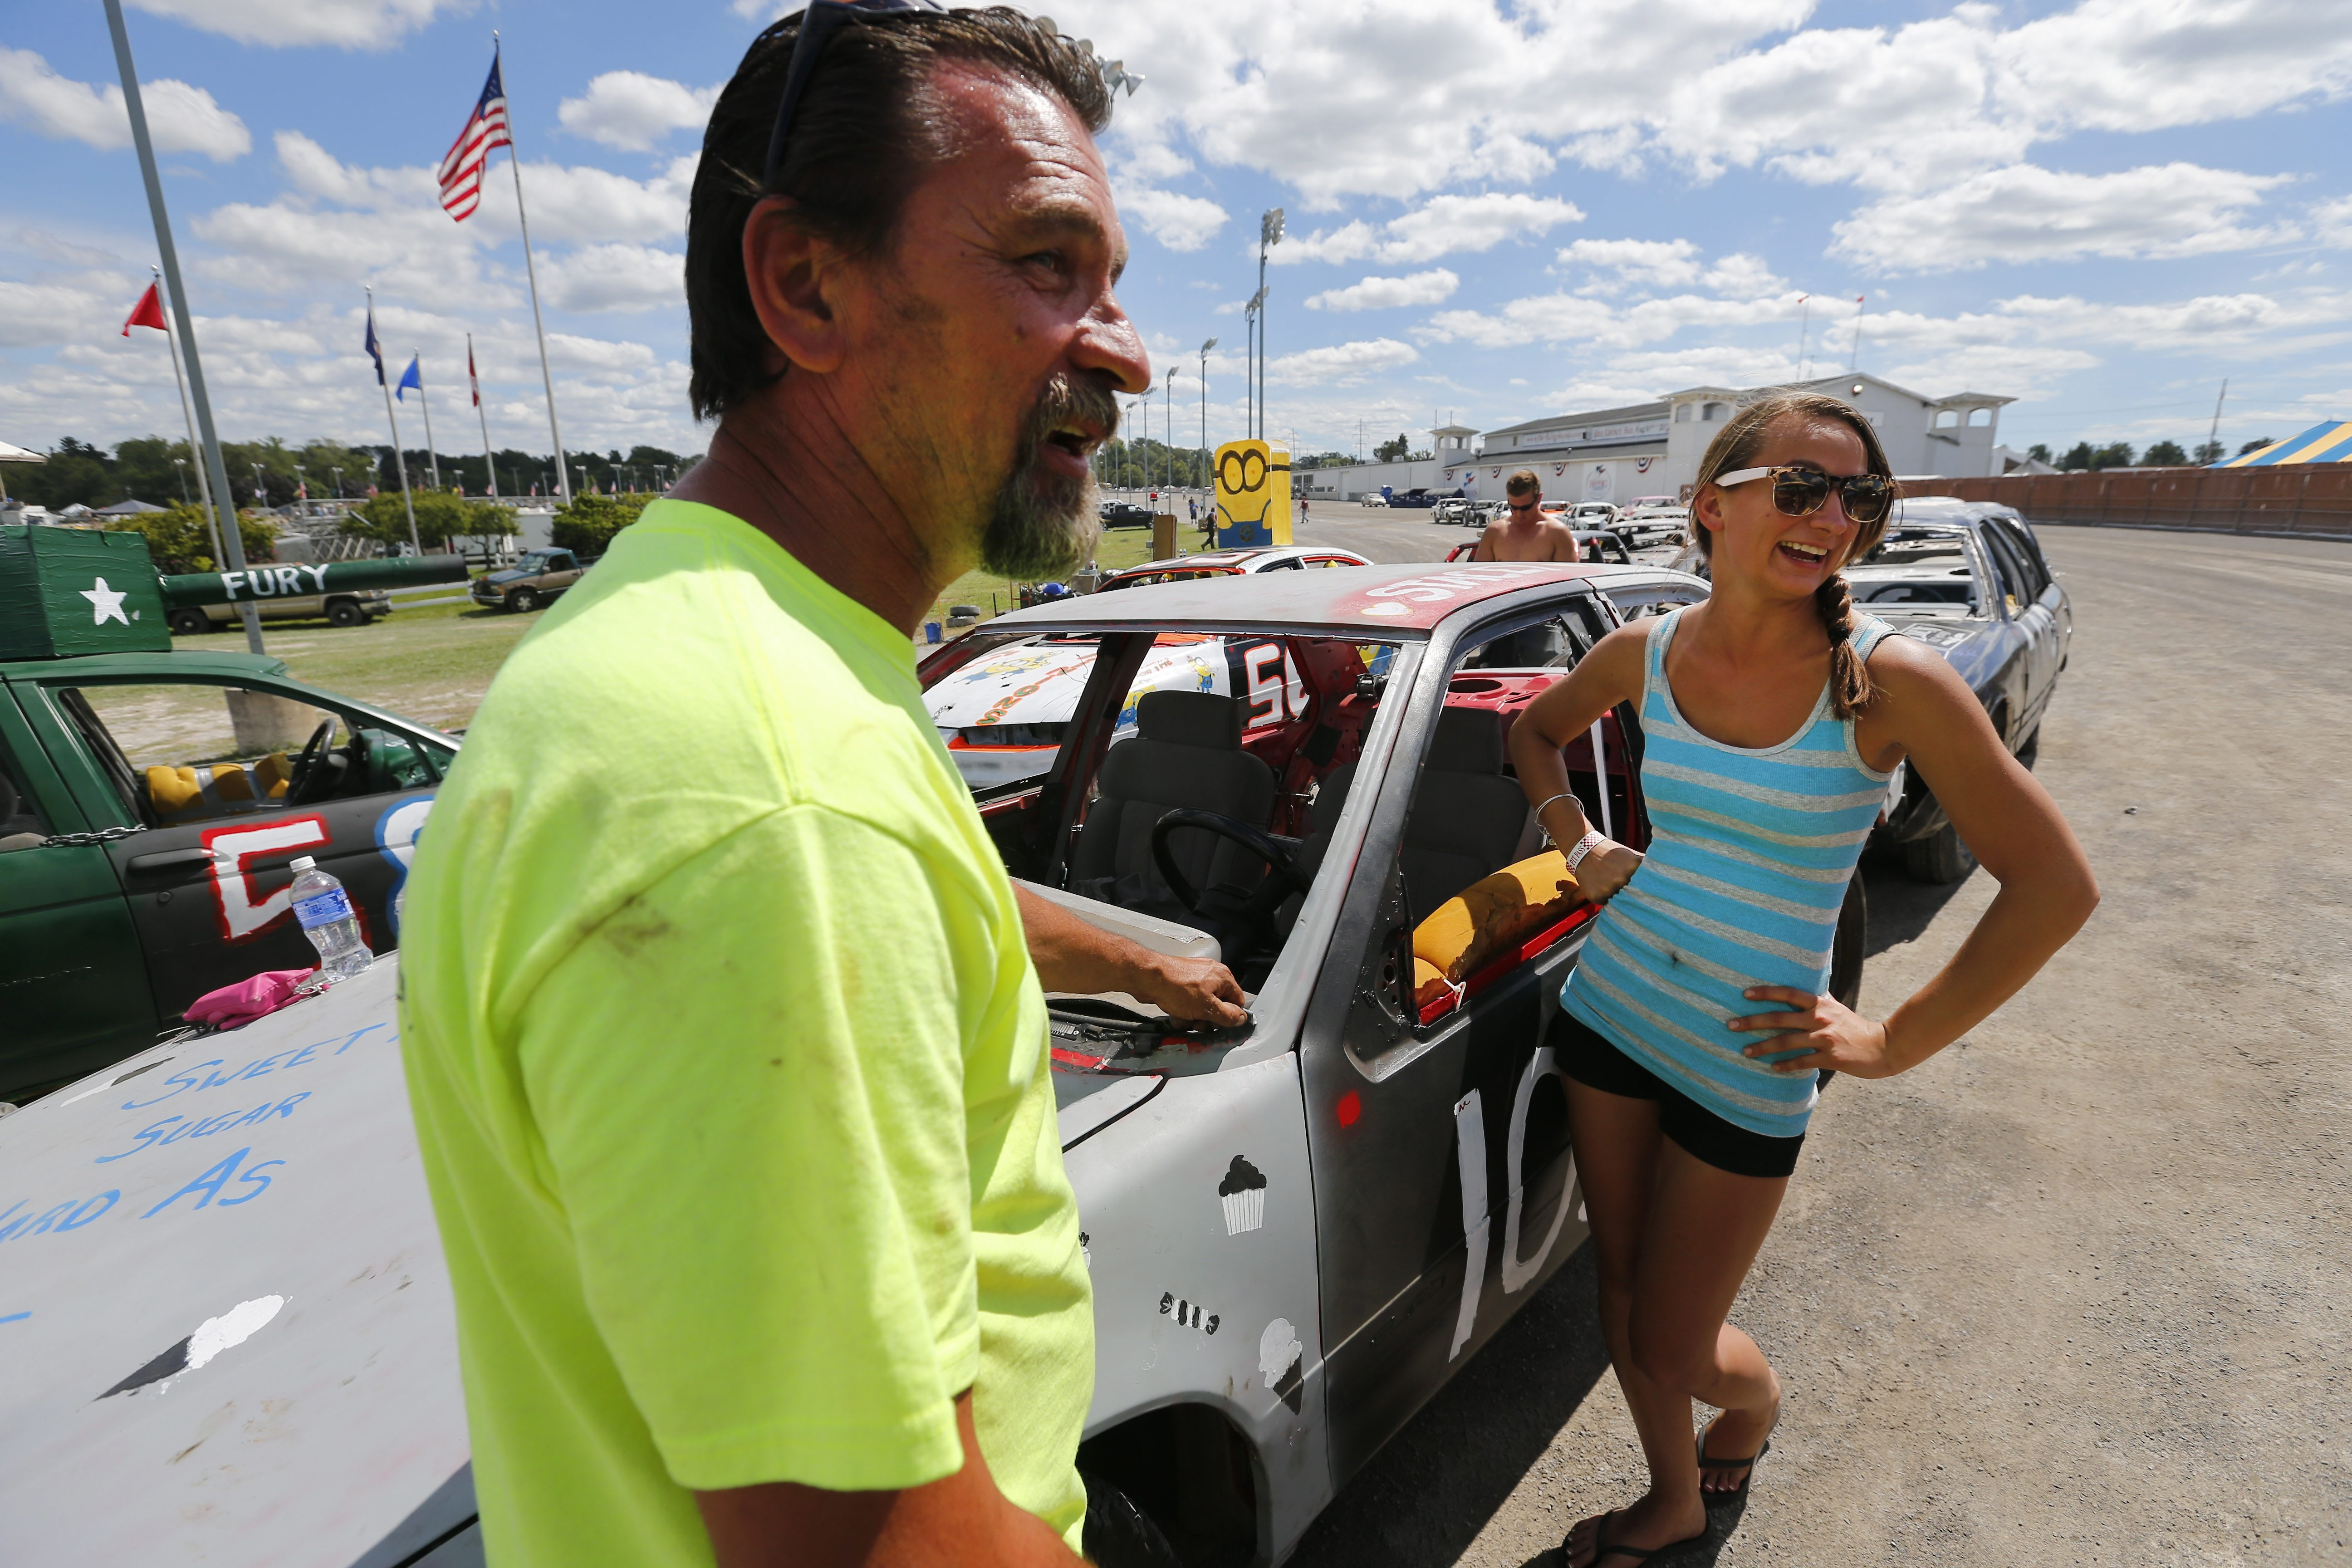 Paul Haniszewski helps get daughter Stacey ready for the Demolition Derby at the Erie County Fair in Hamburg on Sunday. Father and daughter both competed Sunday to pay tribute to Ed Haniszewski, who was the first demo driver in the family.